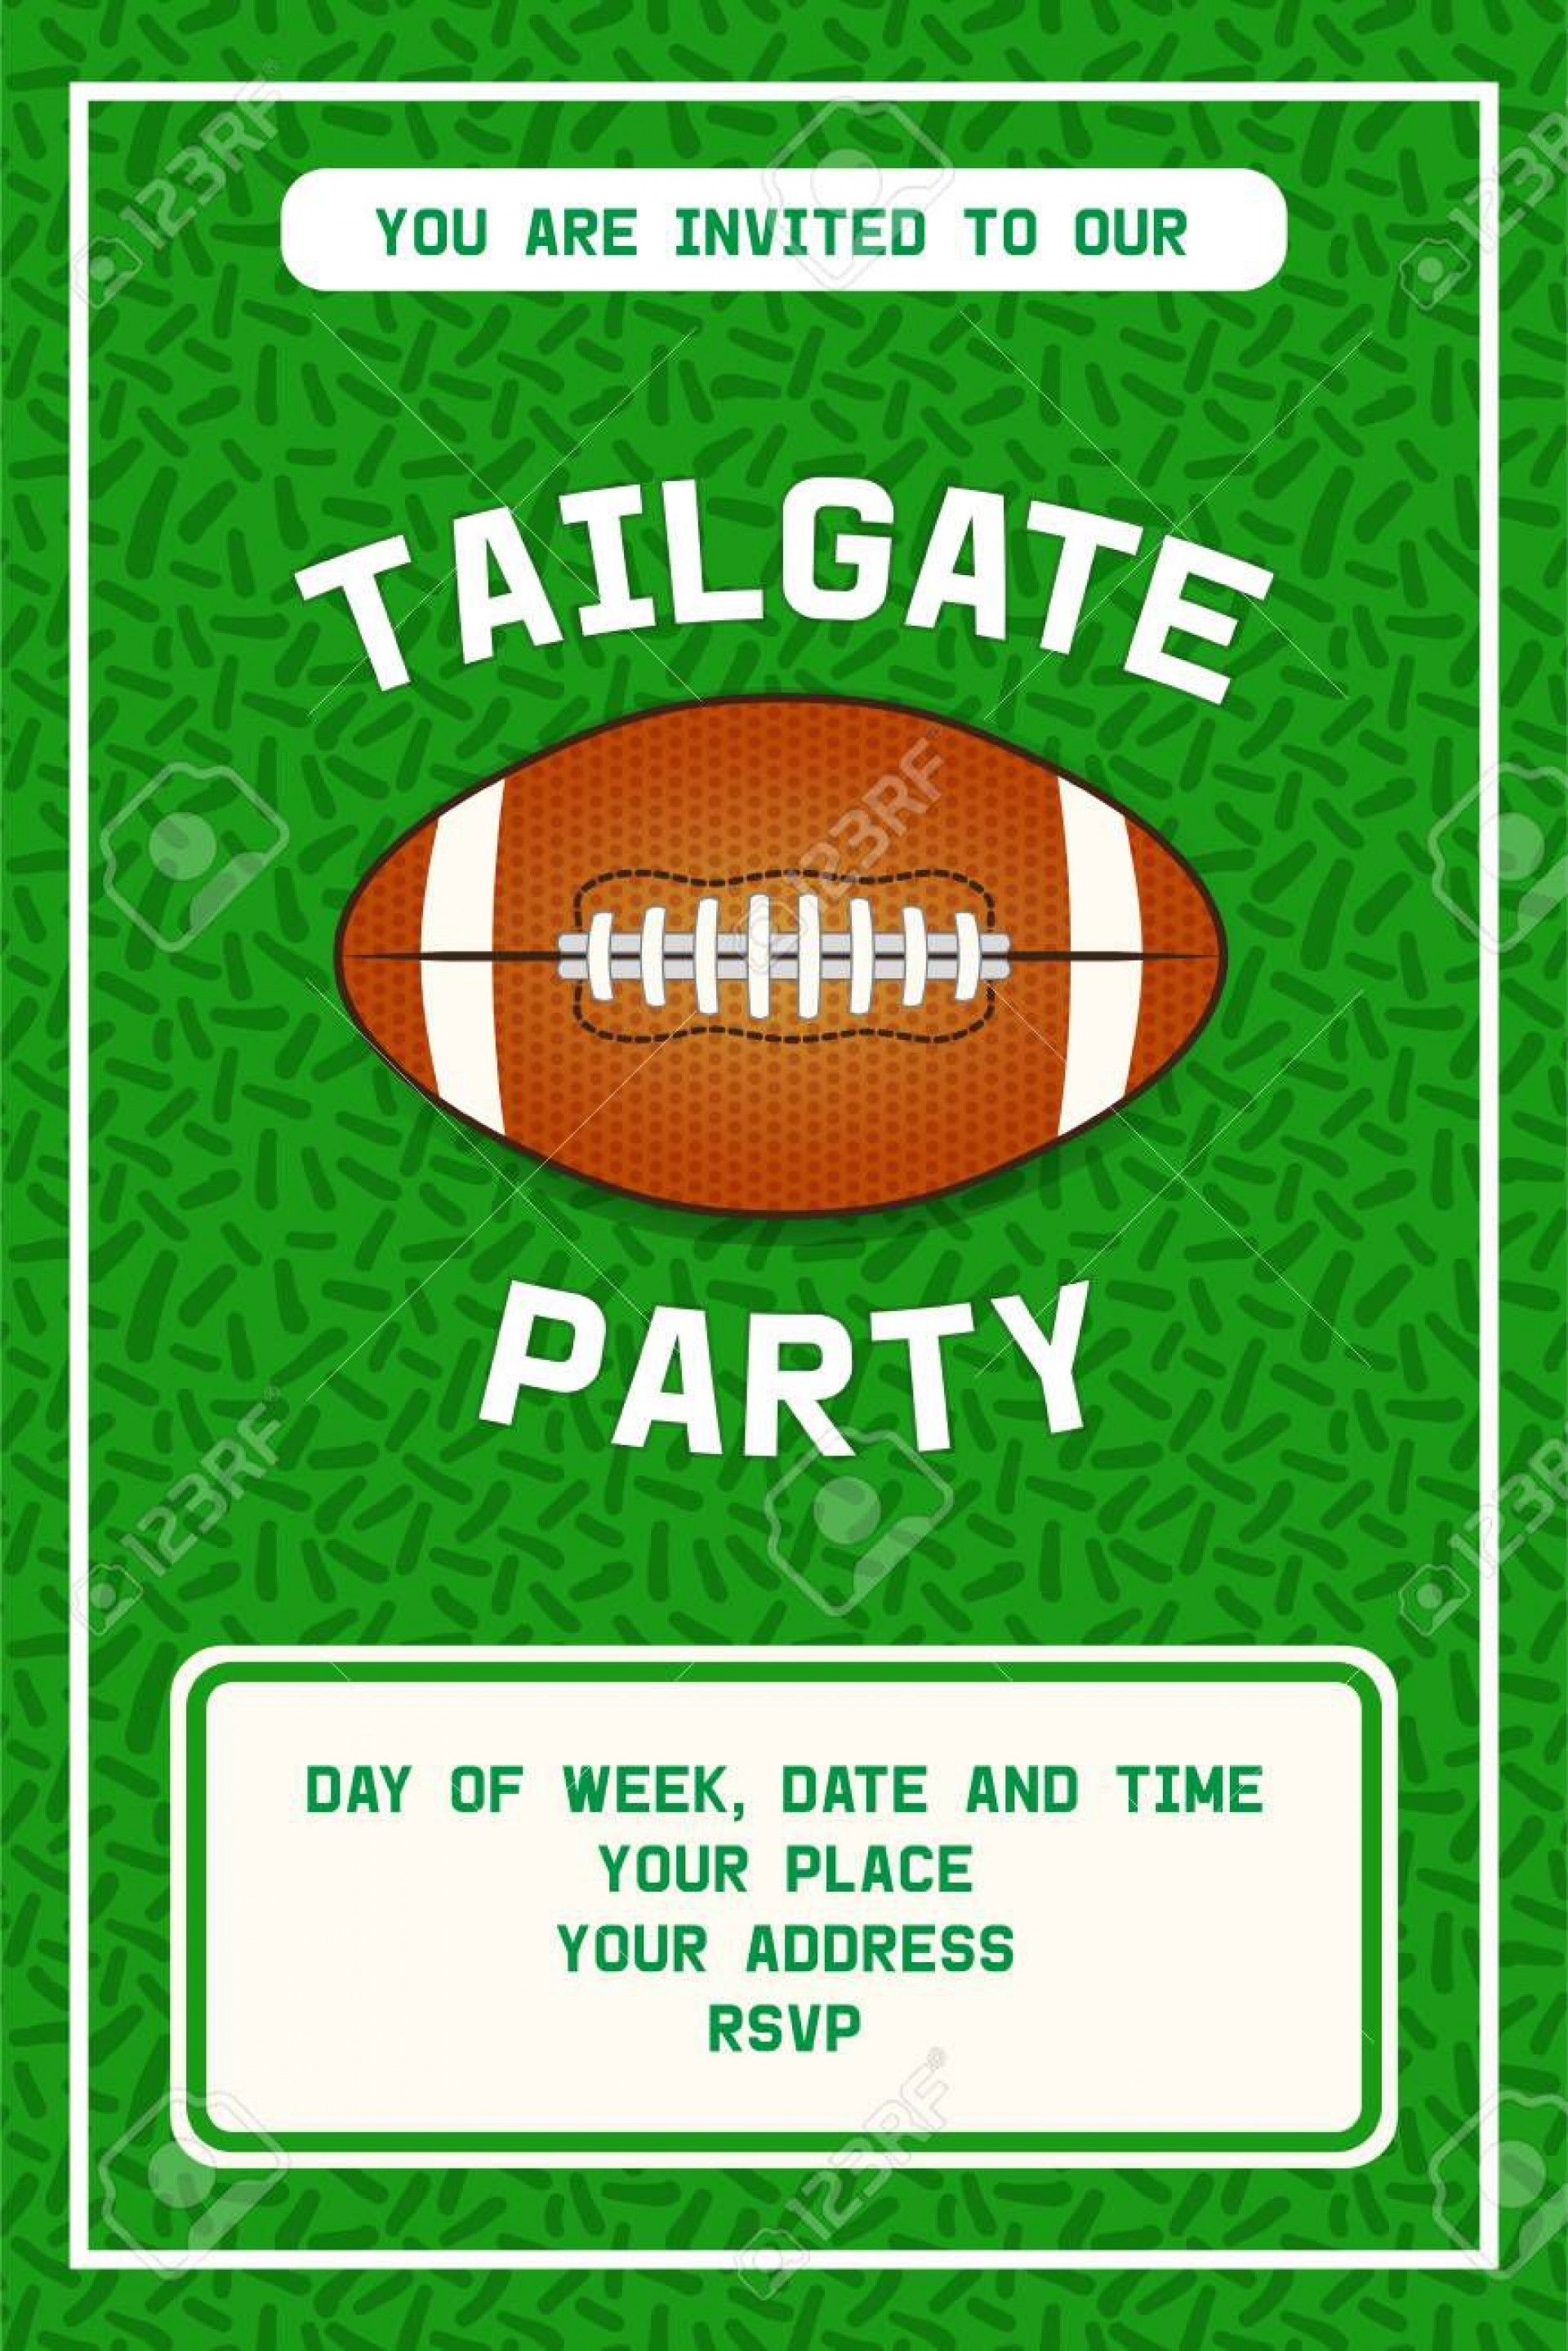 001 Shocking Free Tailgate Party Flyer Template Download Photo 1920